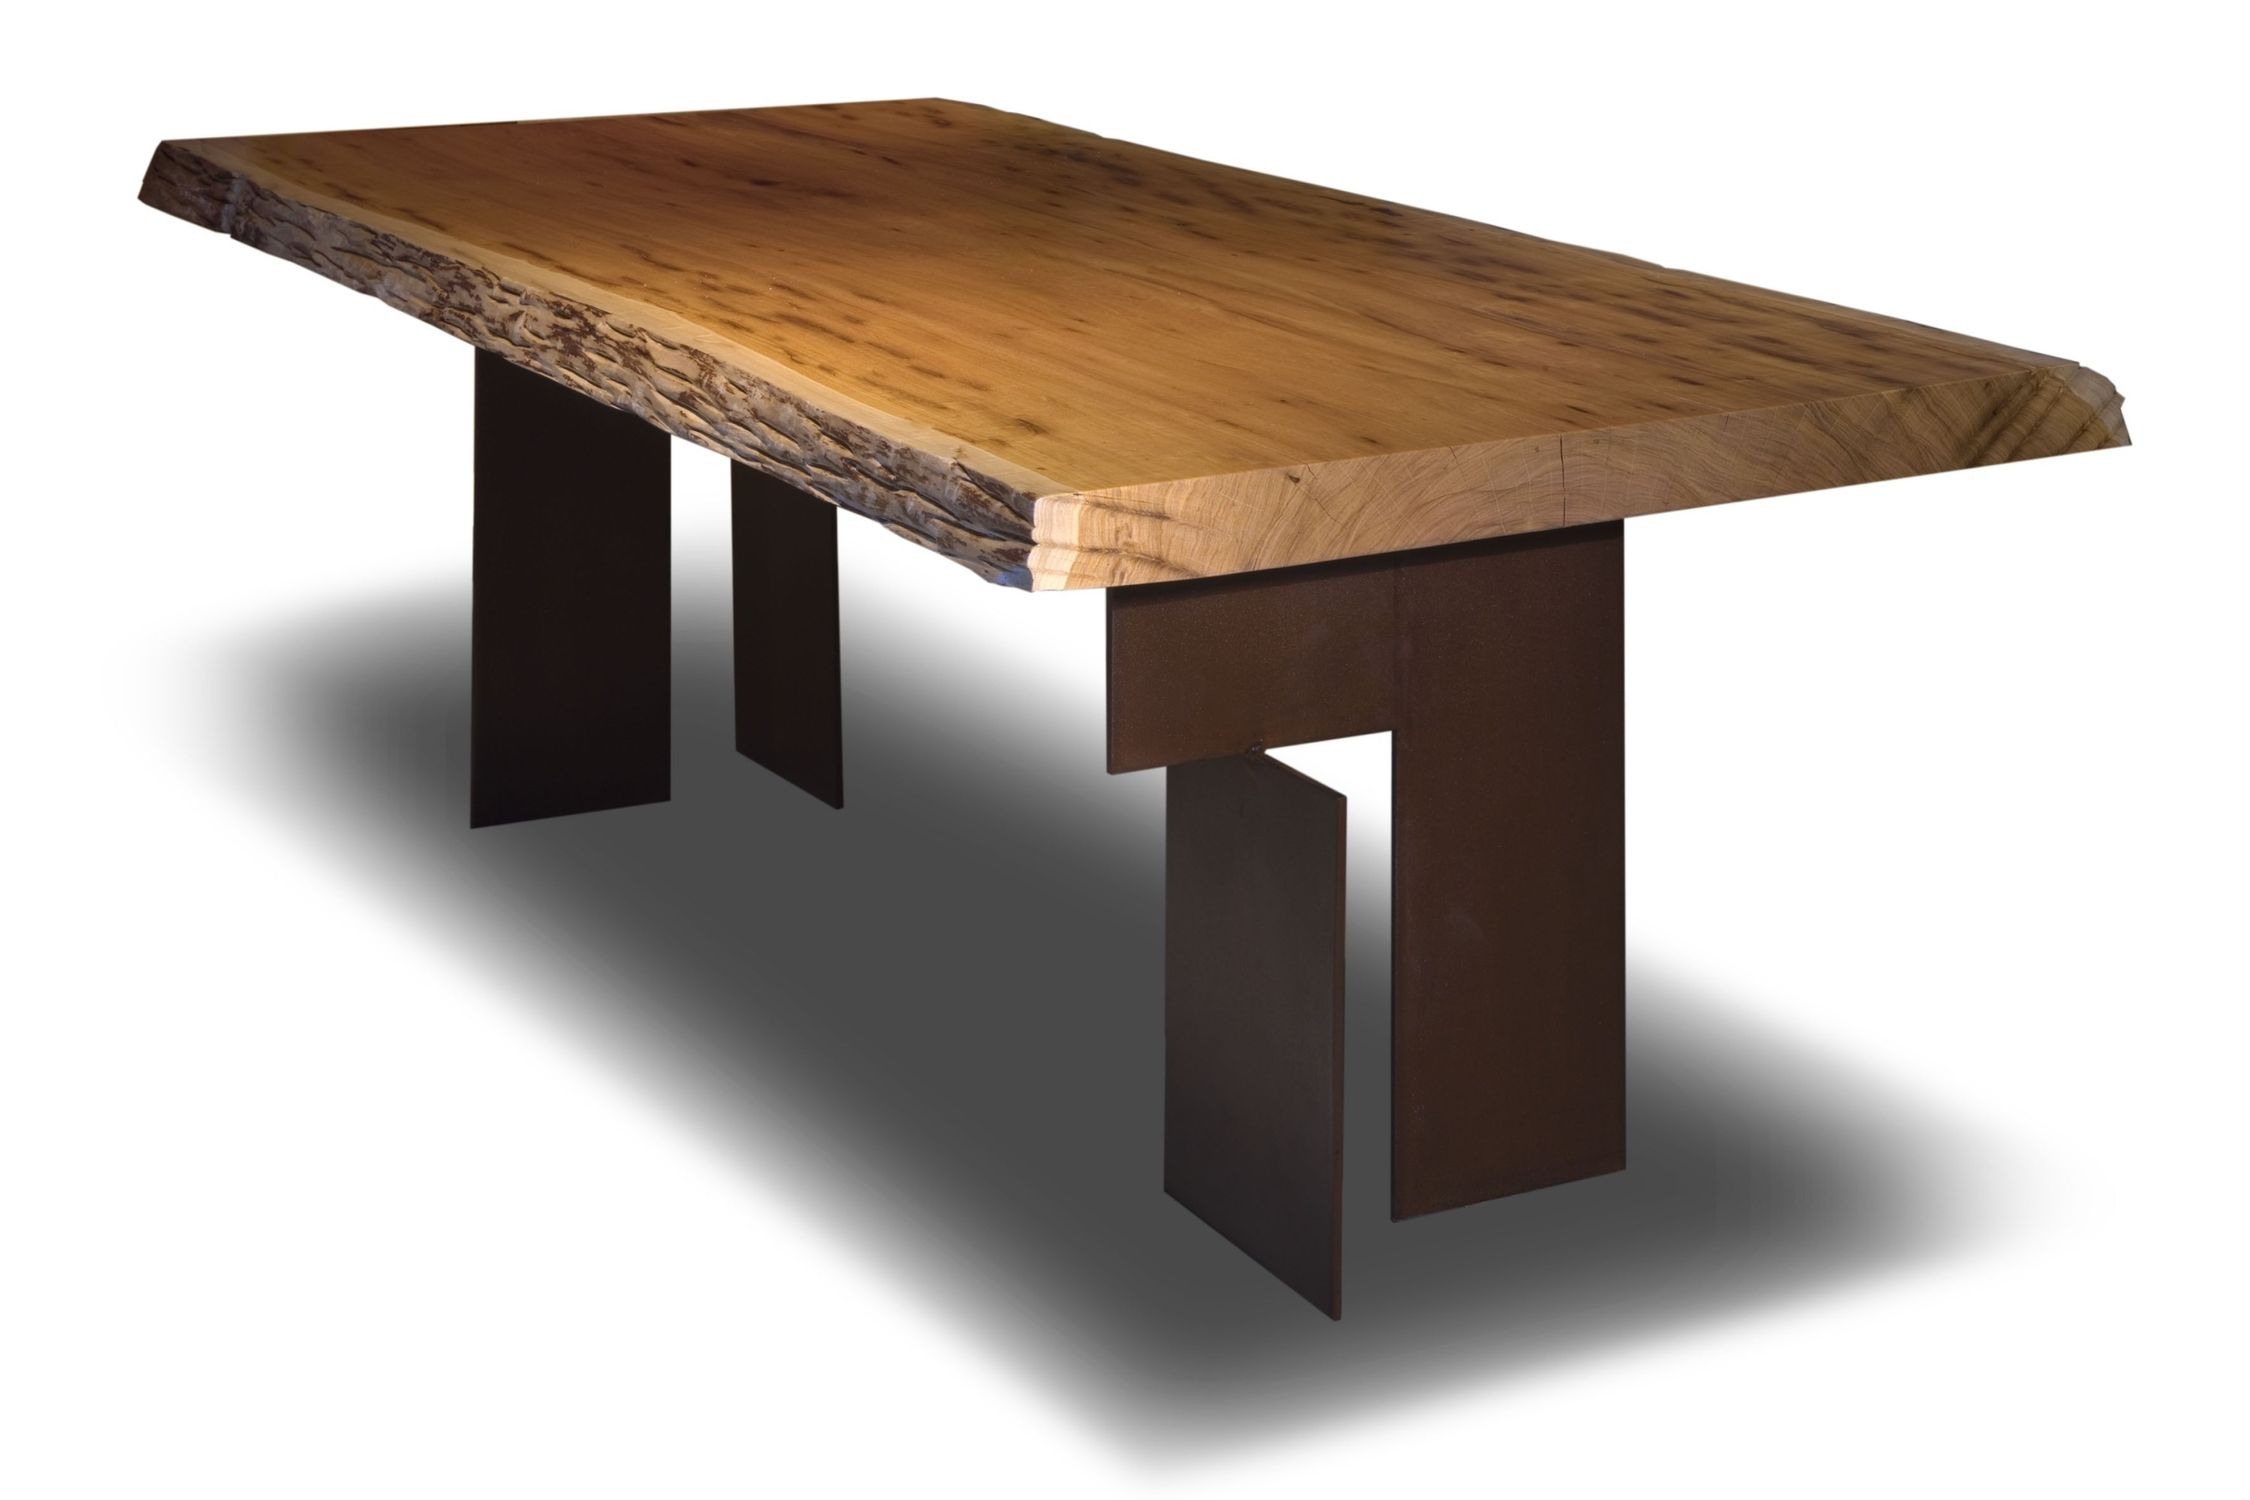 Elegant Contemporary Table / Wooden / Rectangular / In Reclaimed Material   HELENA